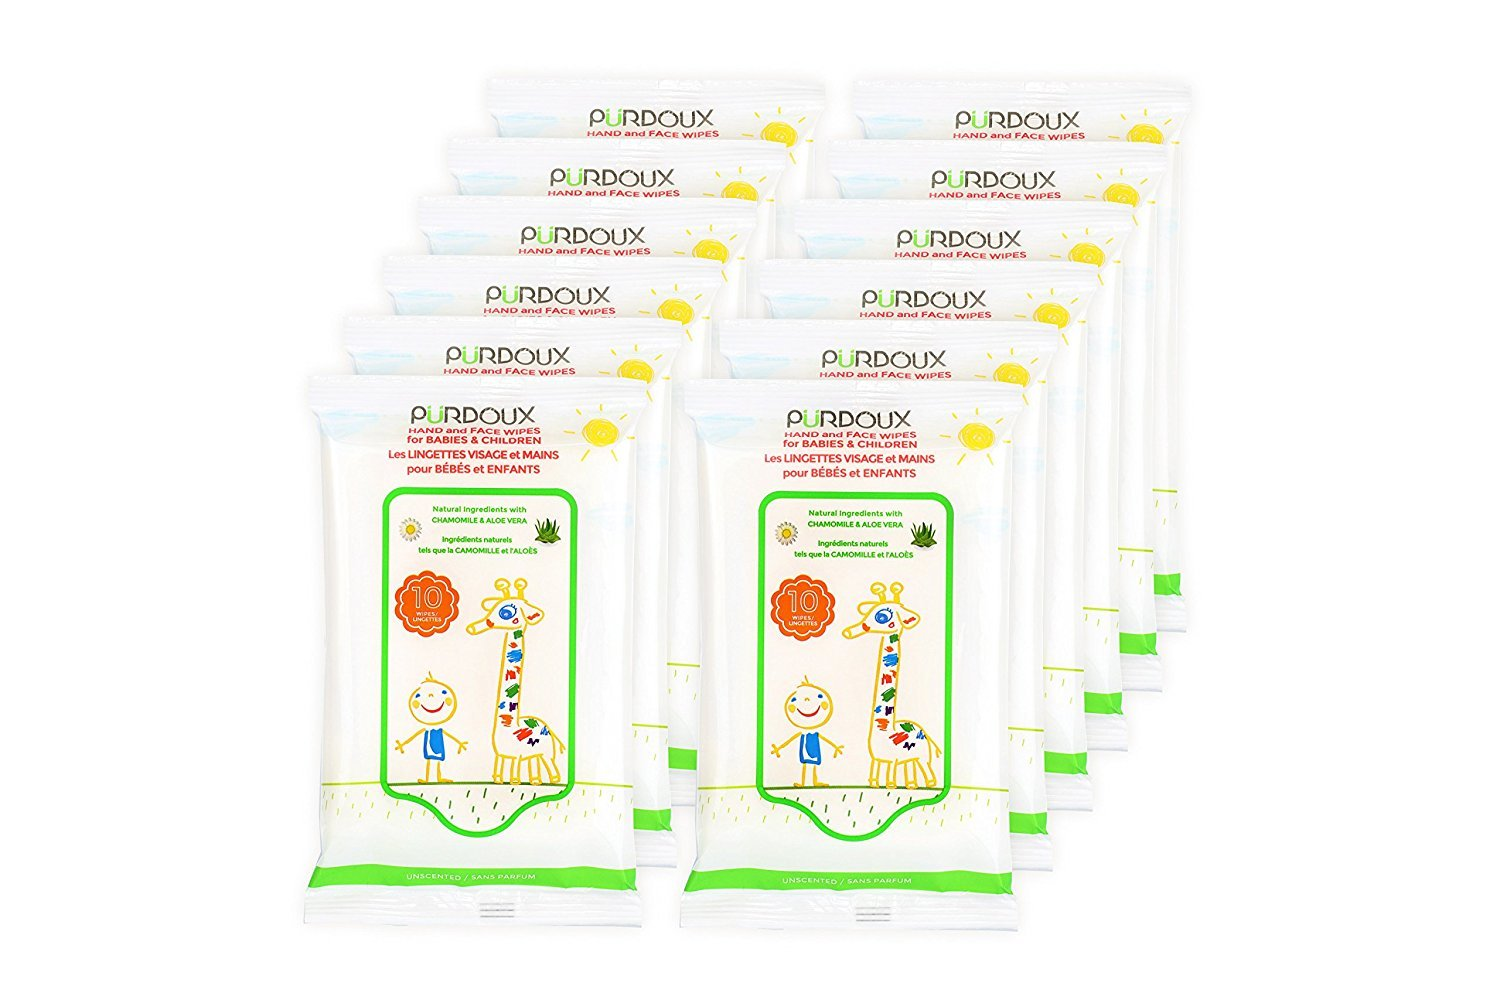 PÜRDOUX™ 100% Cotton Wipes for Babies and Children with Aloe Vera and Chamomile (Box of total 120 wet wipes in 12 resealable sachets, 10 wipes per sachet)